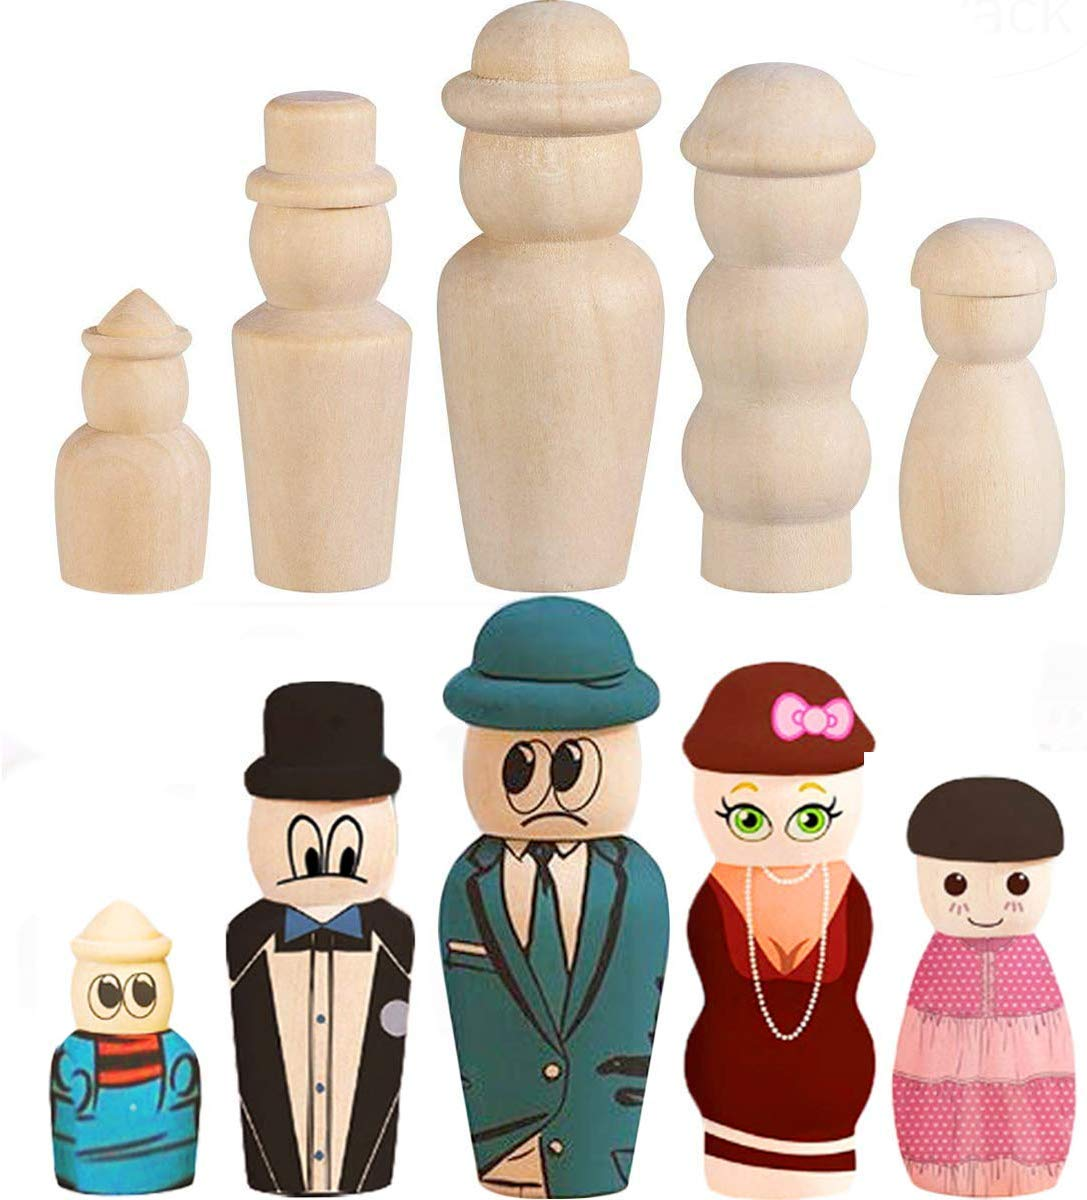 Craft Art Projects Family Peg People Doll Bodies 5 Assorted Shapes Peg Game Natural Decorative Wood Shapes Figures for Painting WOWOSS 50 Pack Unfinished Wooden Peg Dolls with Hat